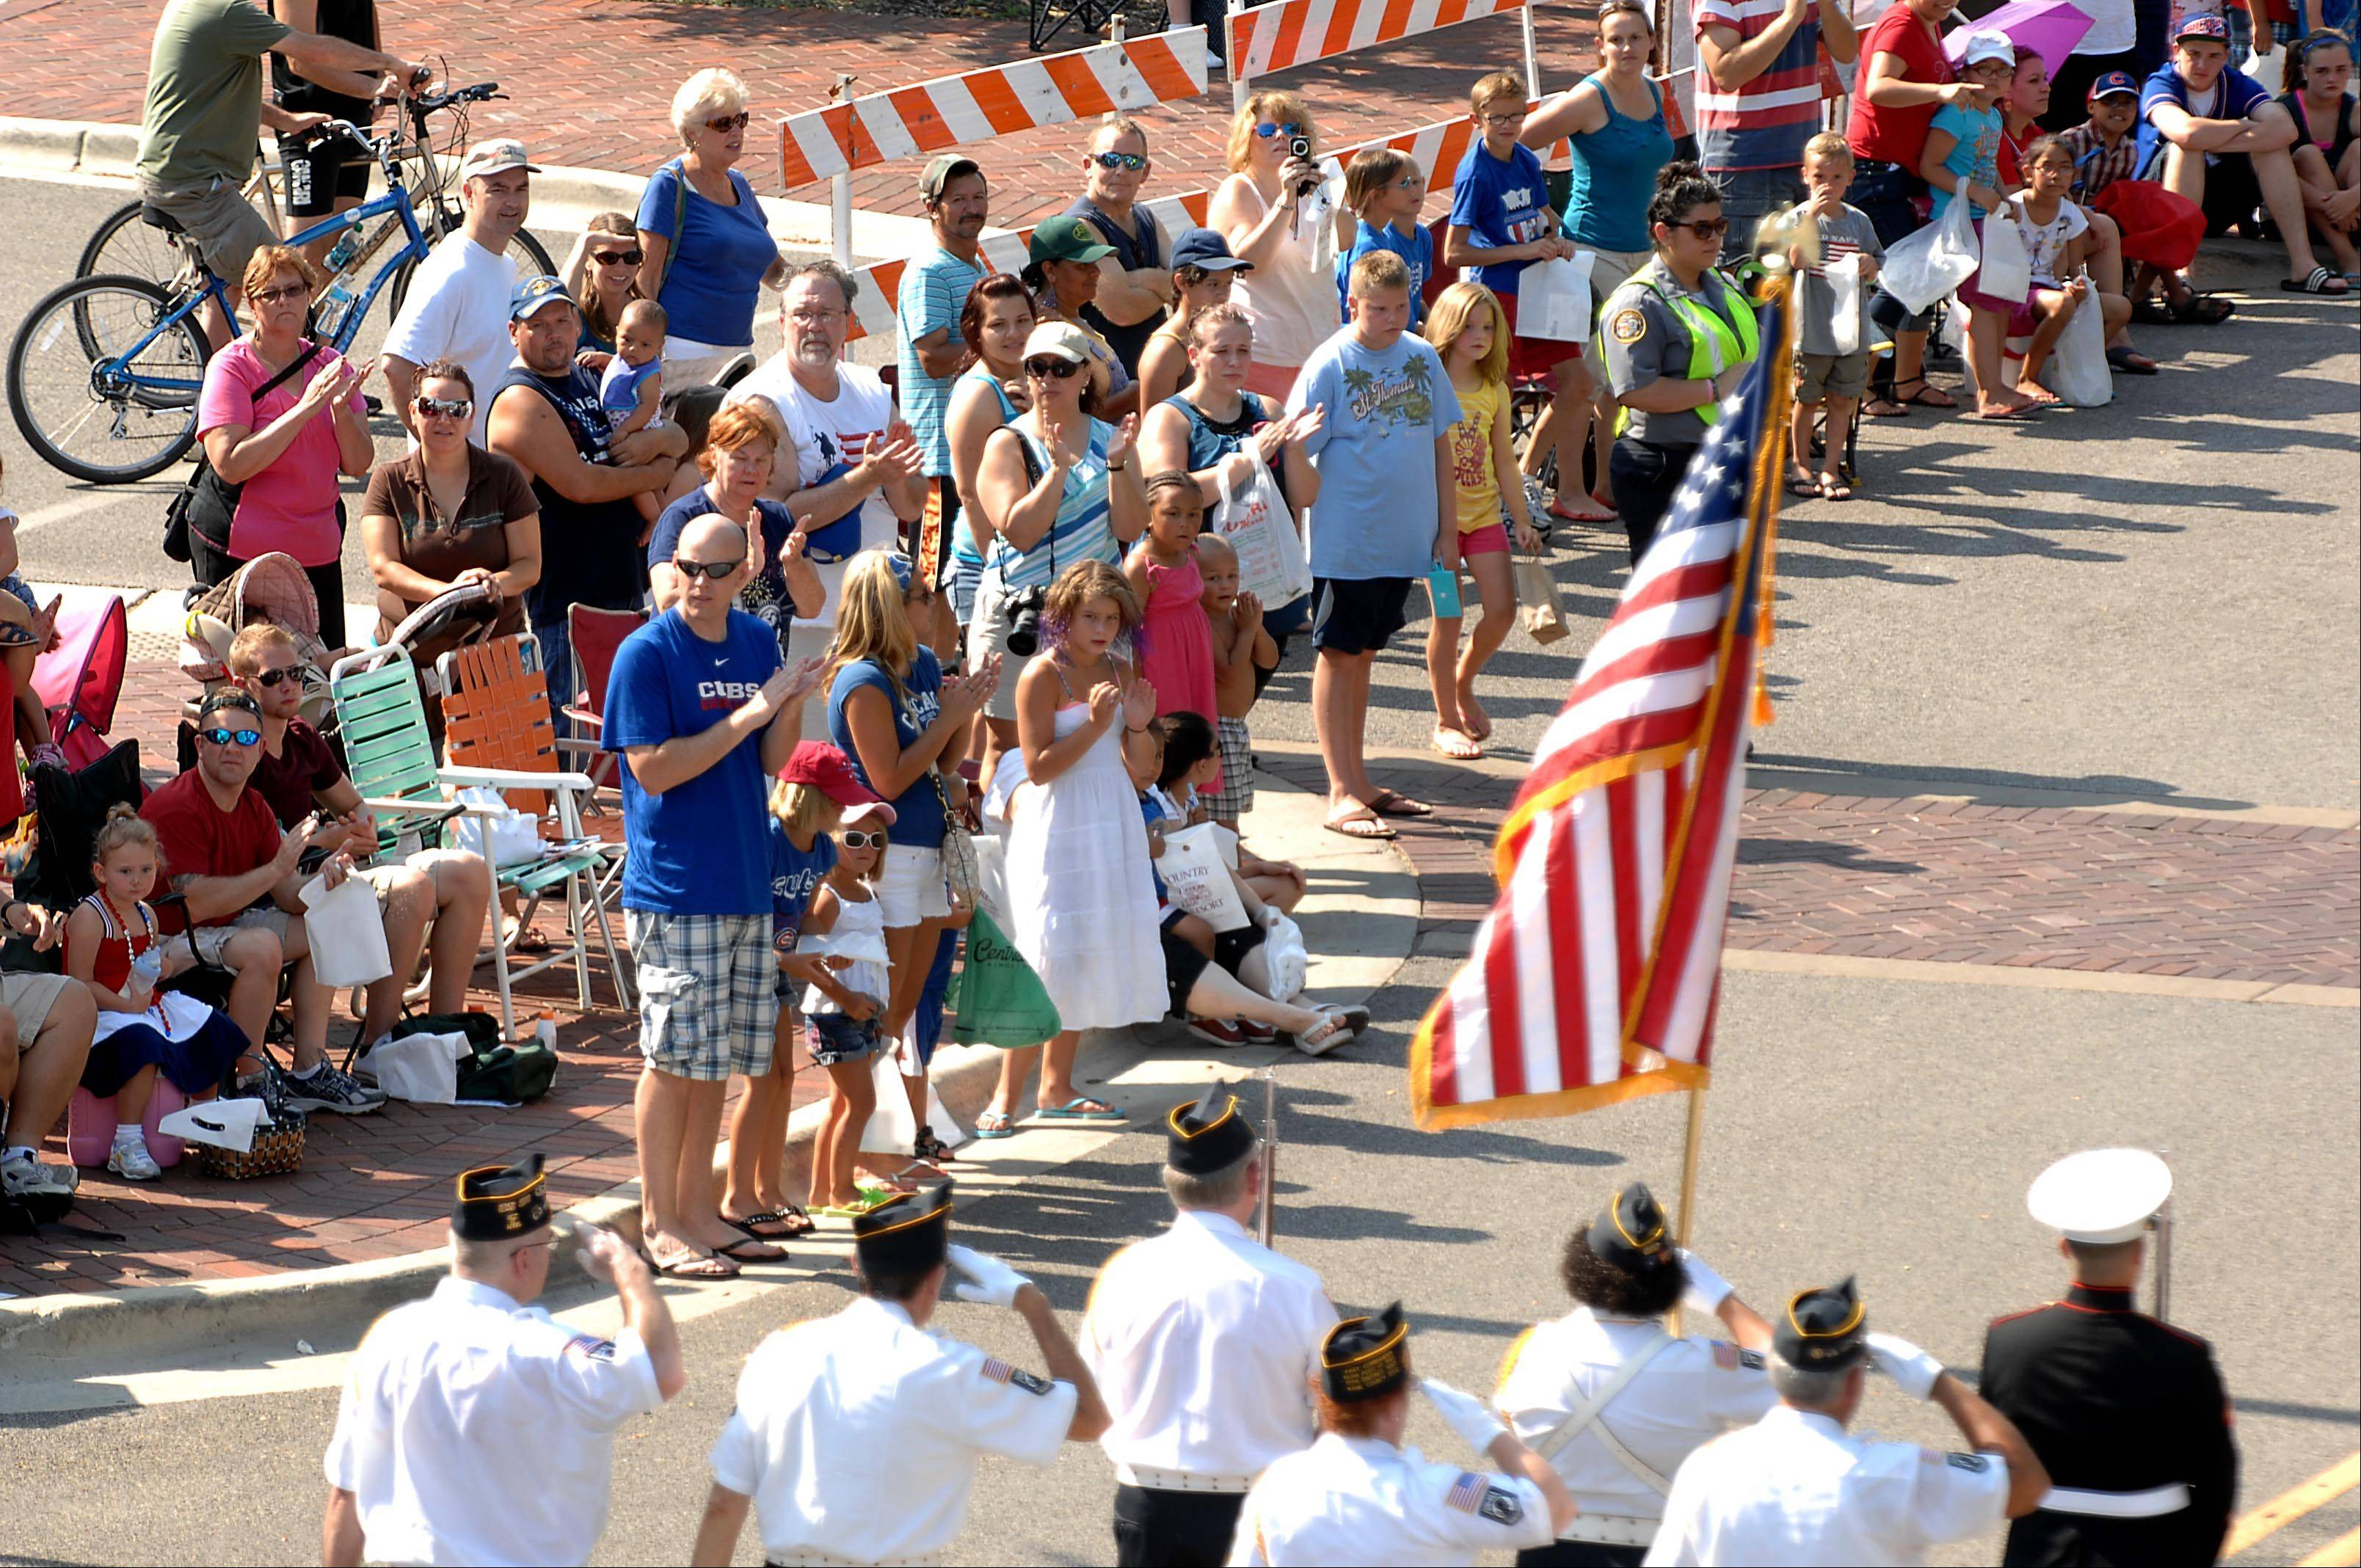 The crowd stands and applauds as the American Flag passes Wednesday at Elgin Fourth of July parade.